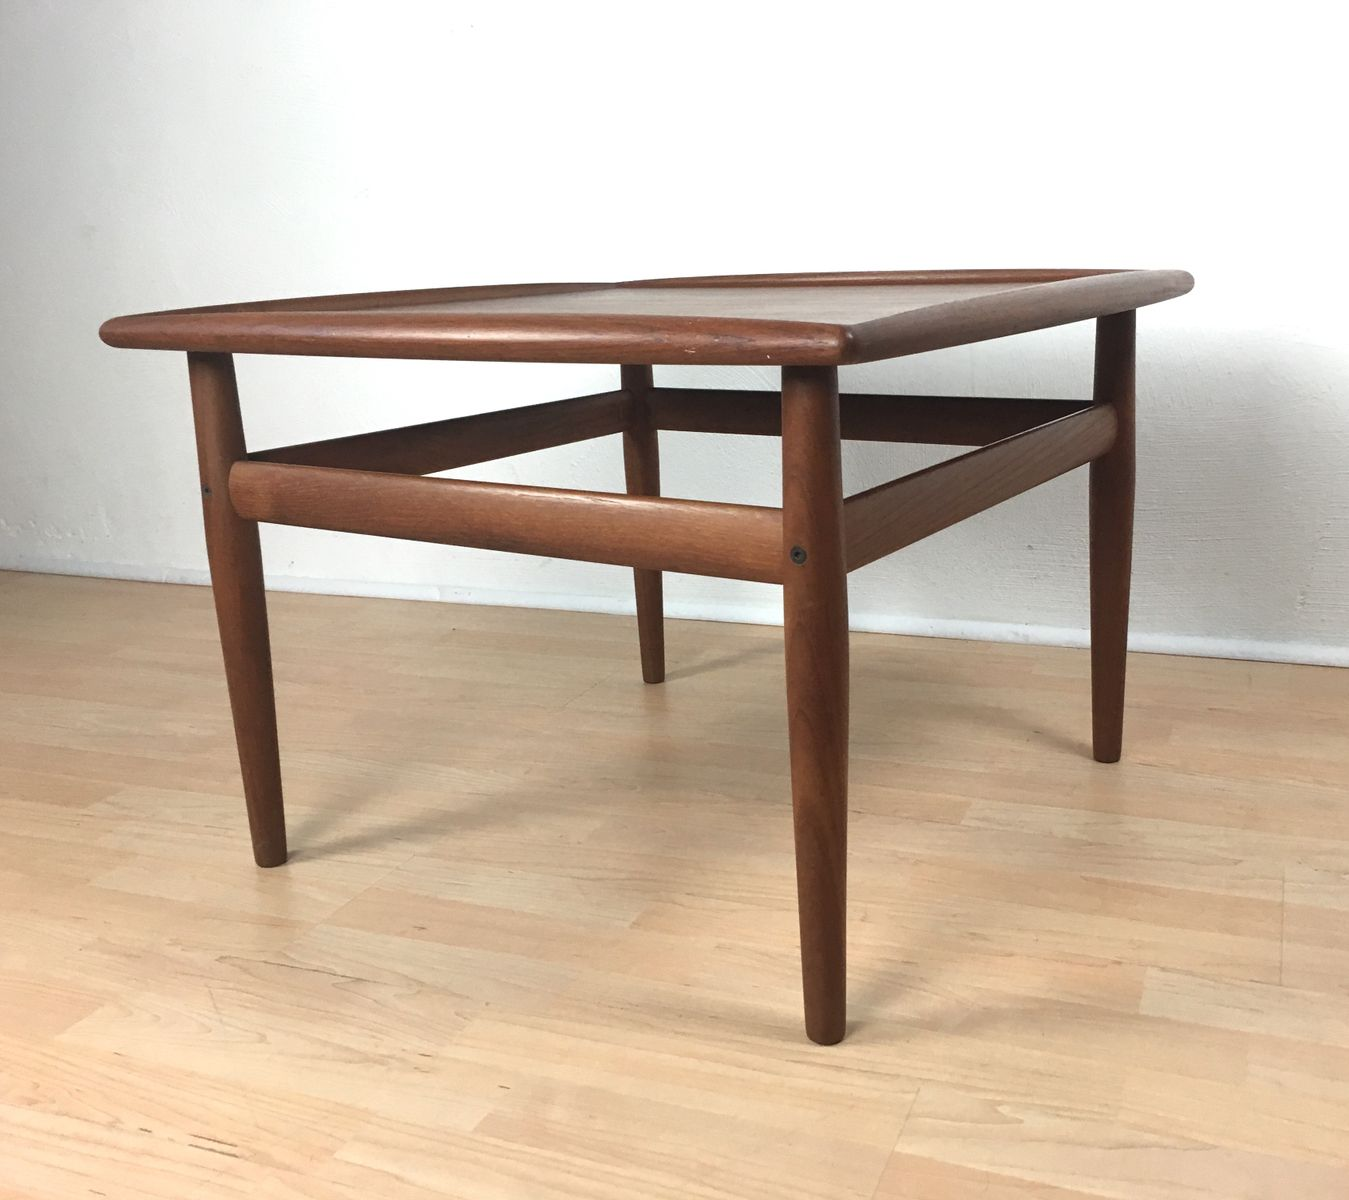 Vintage Teak Coffee Table By Grete Jalk For Glostrup M Belfabrik For Sale At Pamono